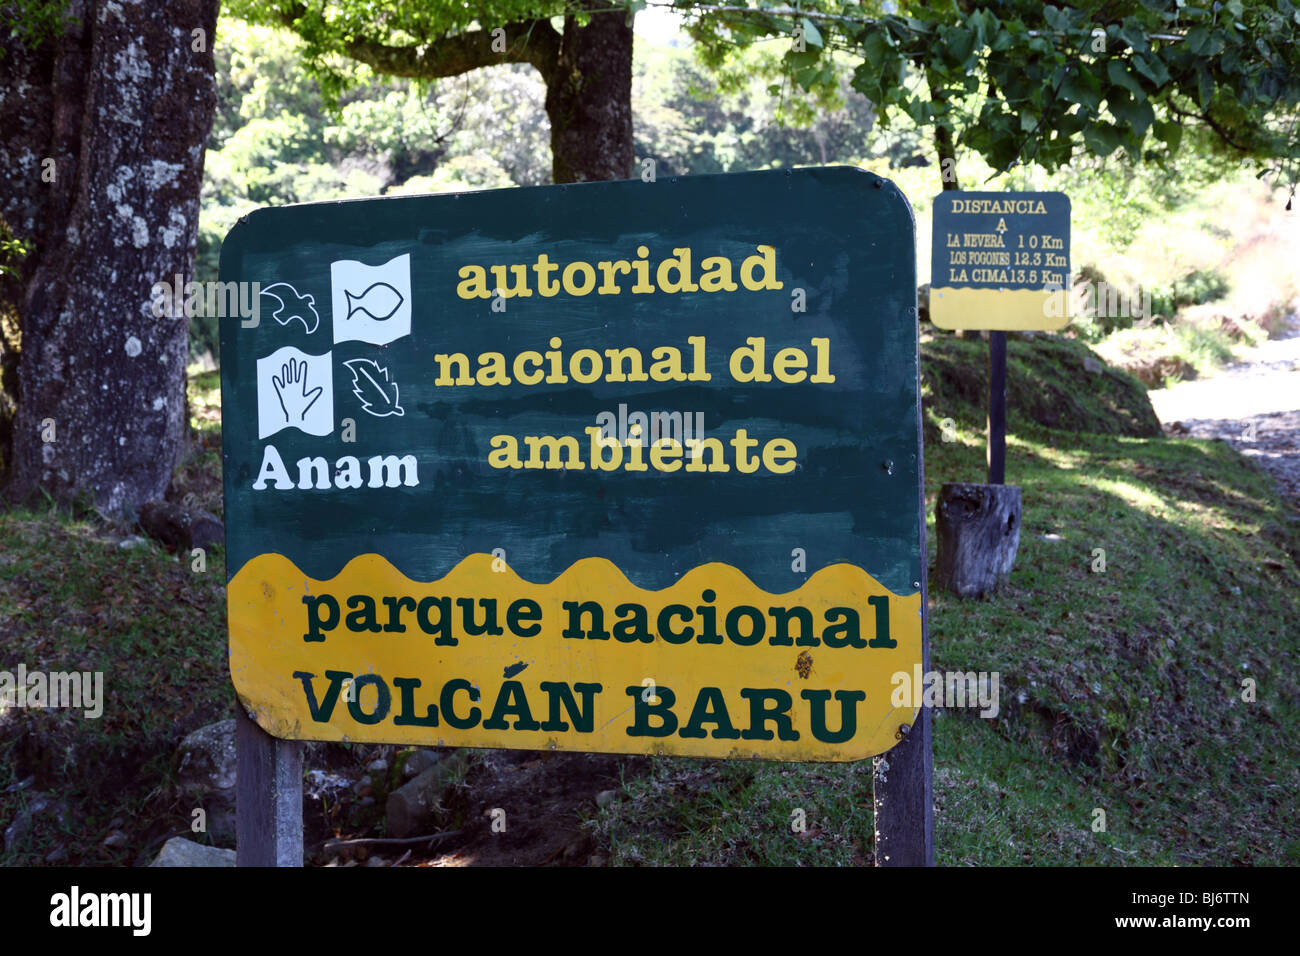 ANAM sign at entrance to Volcan Baru National Park, near Boquete, Chiriqui, Panama - Stock Image